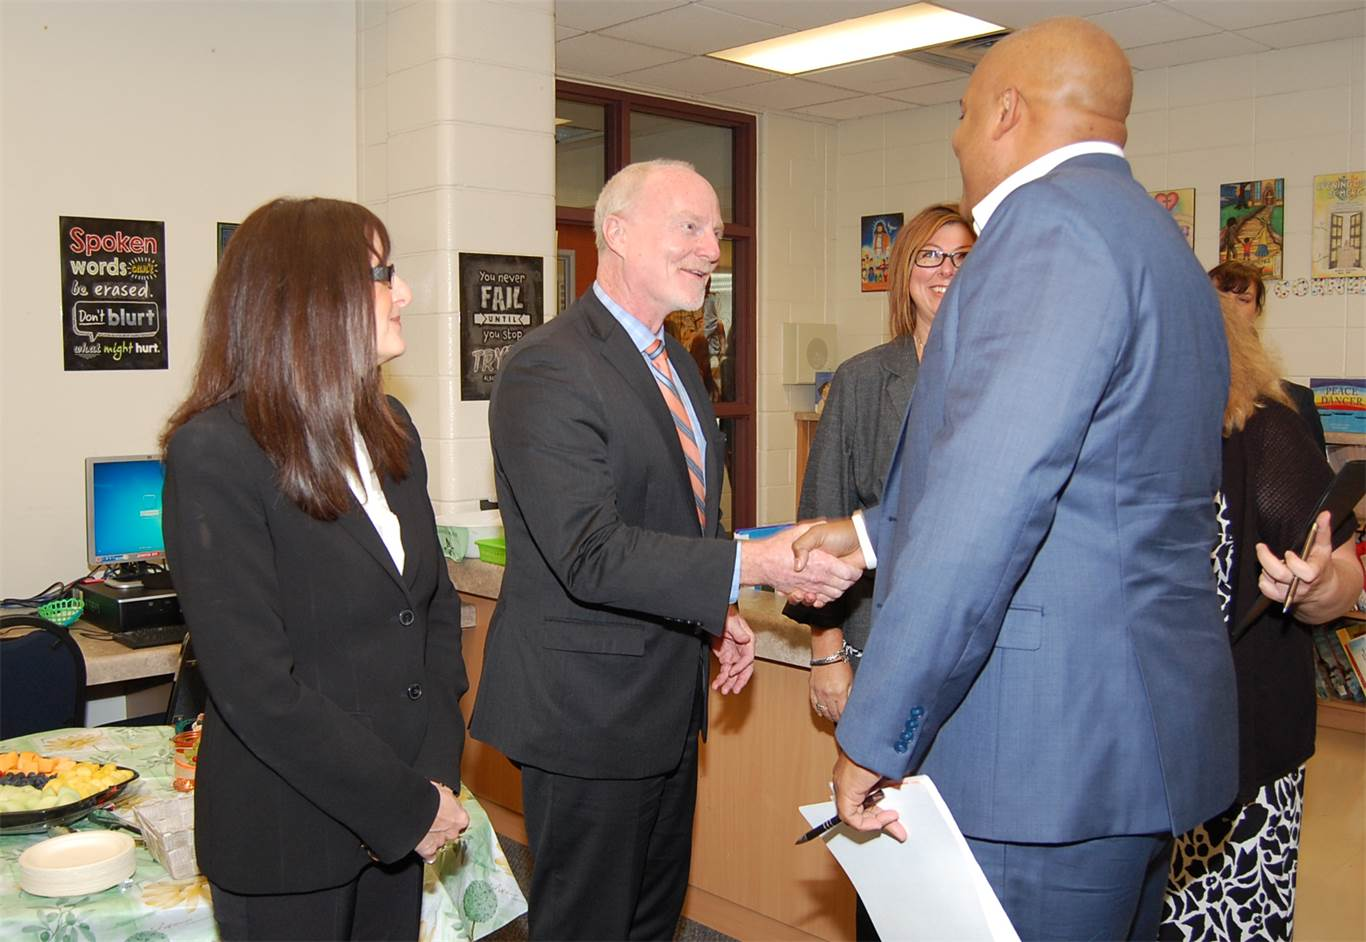 Minister of Children and Youth Services Michael Coteau is greeted by Director of Education David Hansen.